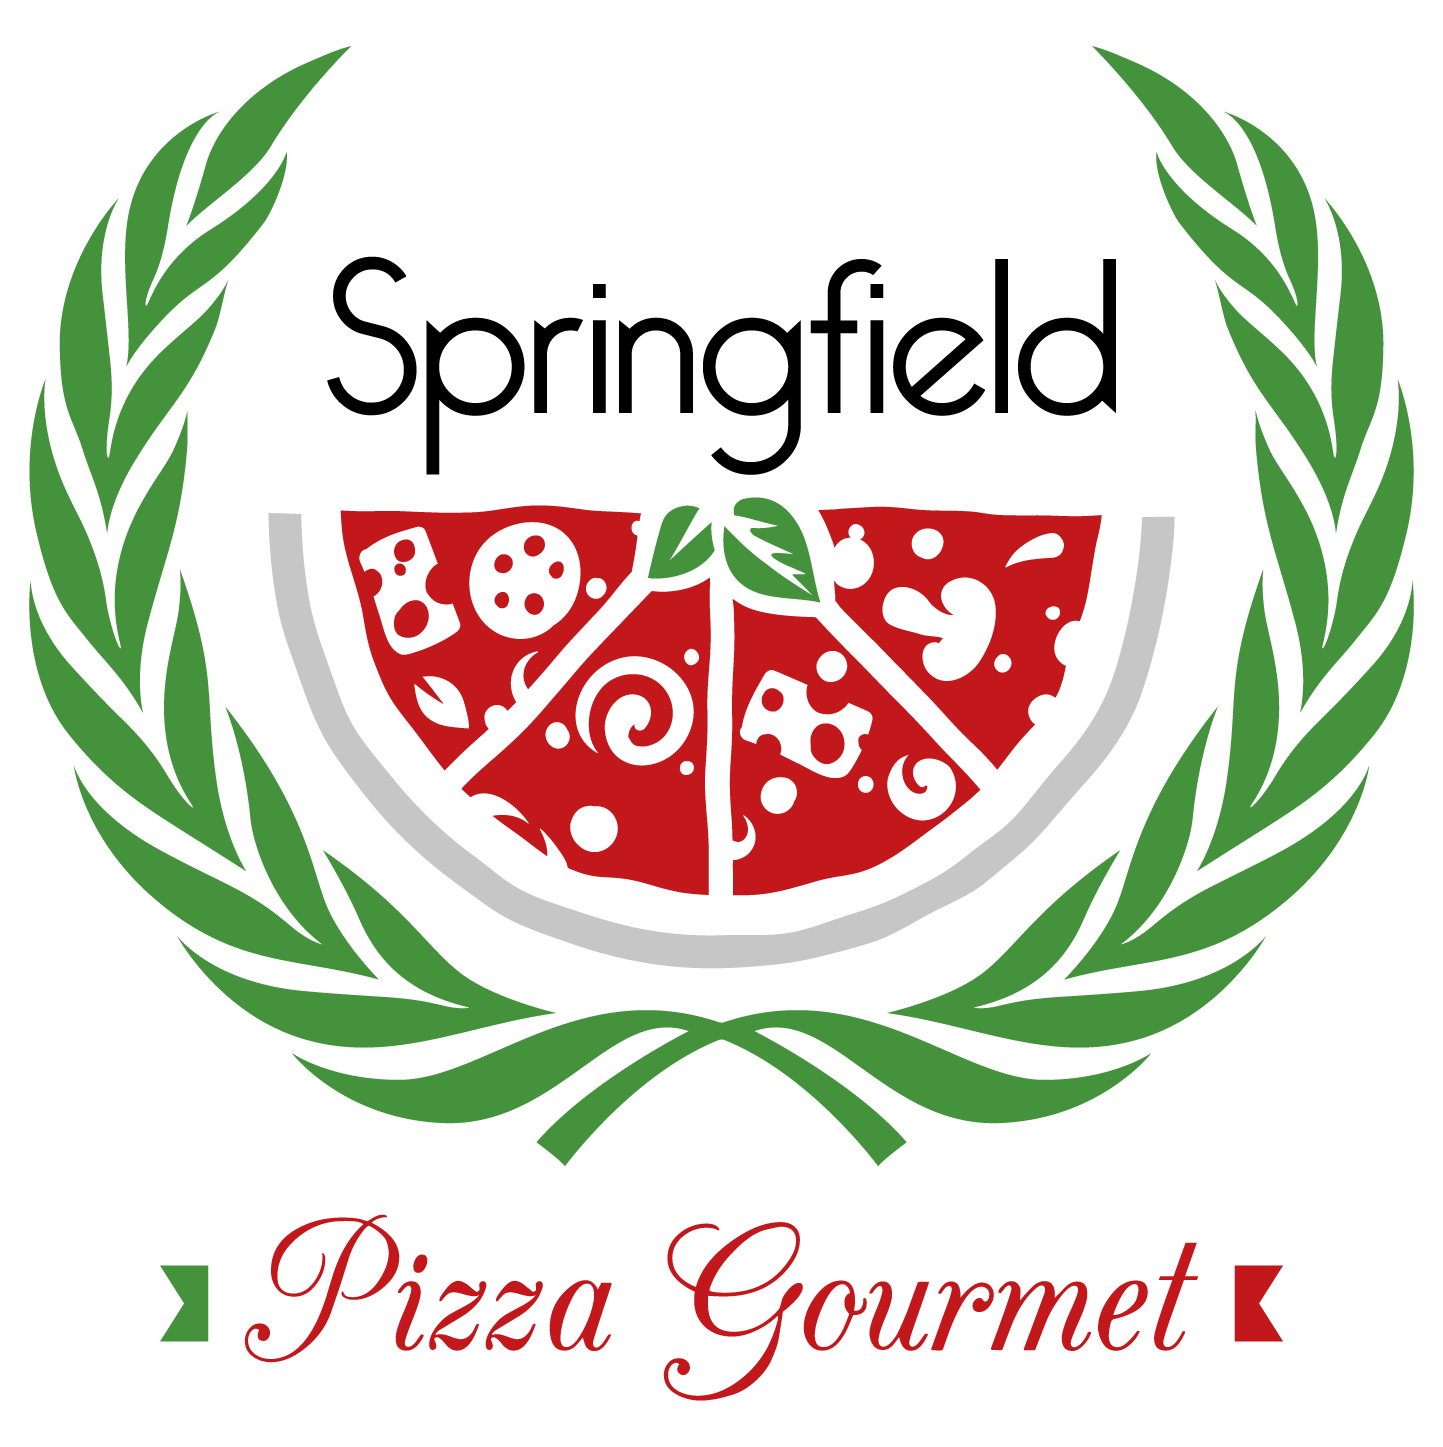 Springfield Pizza Gourmet